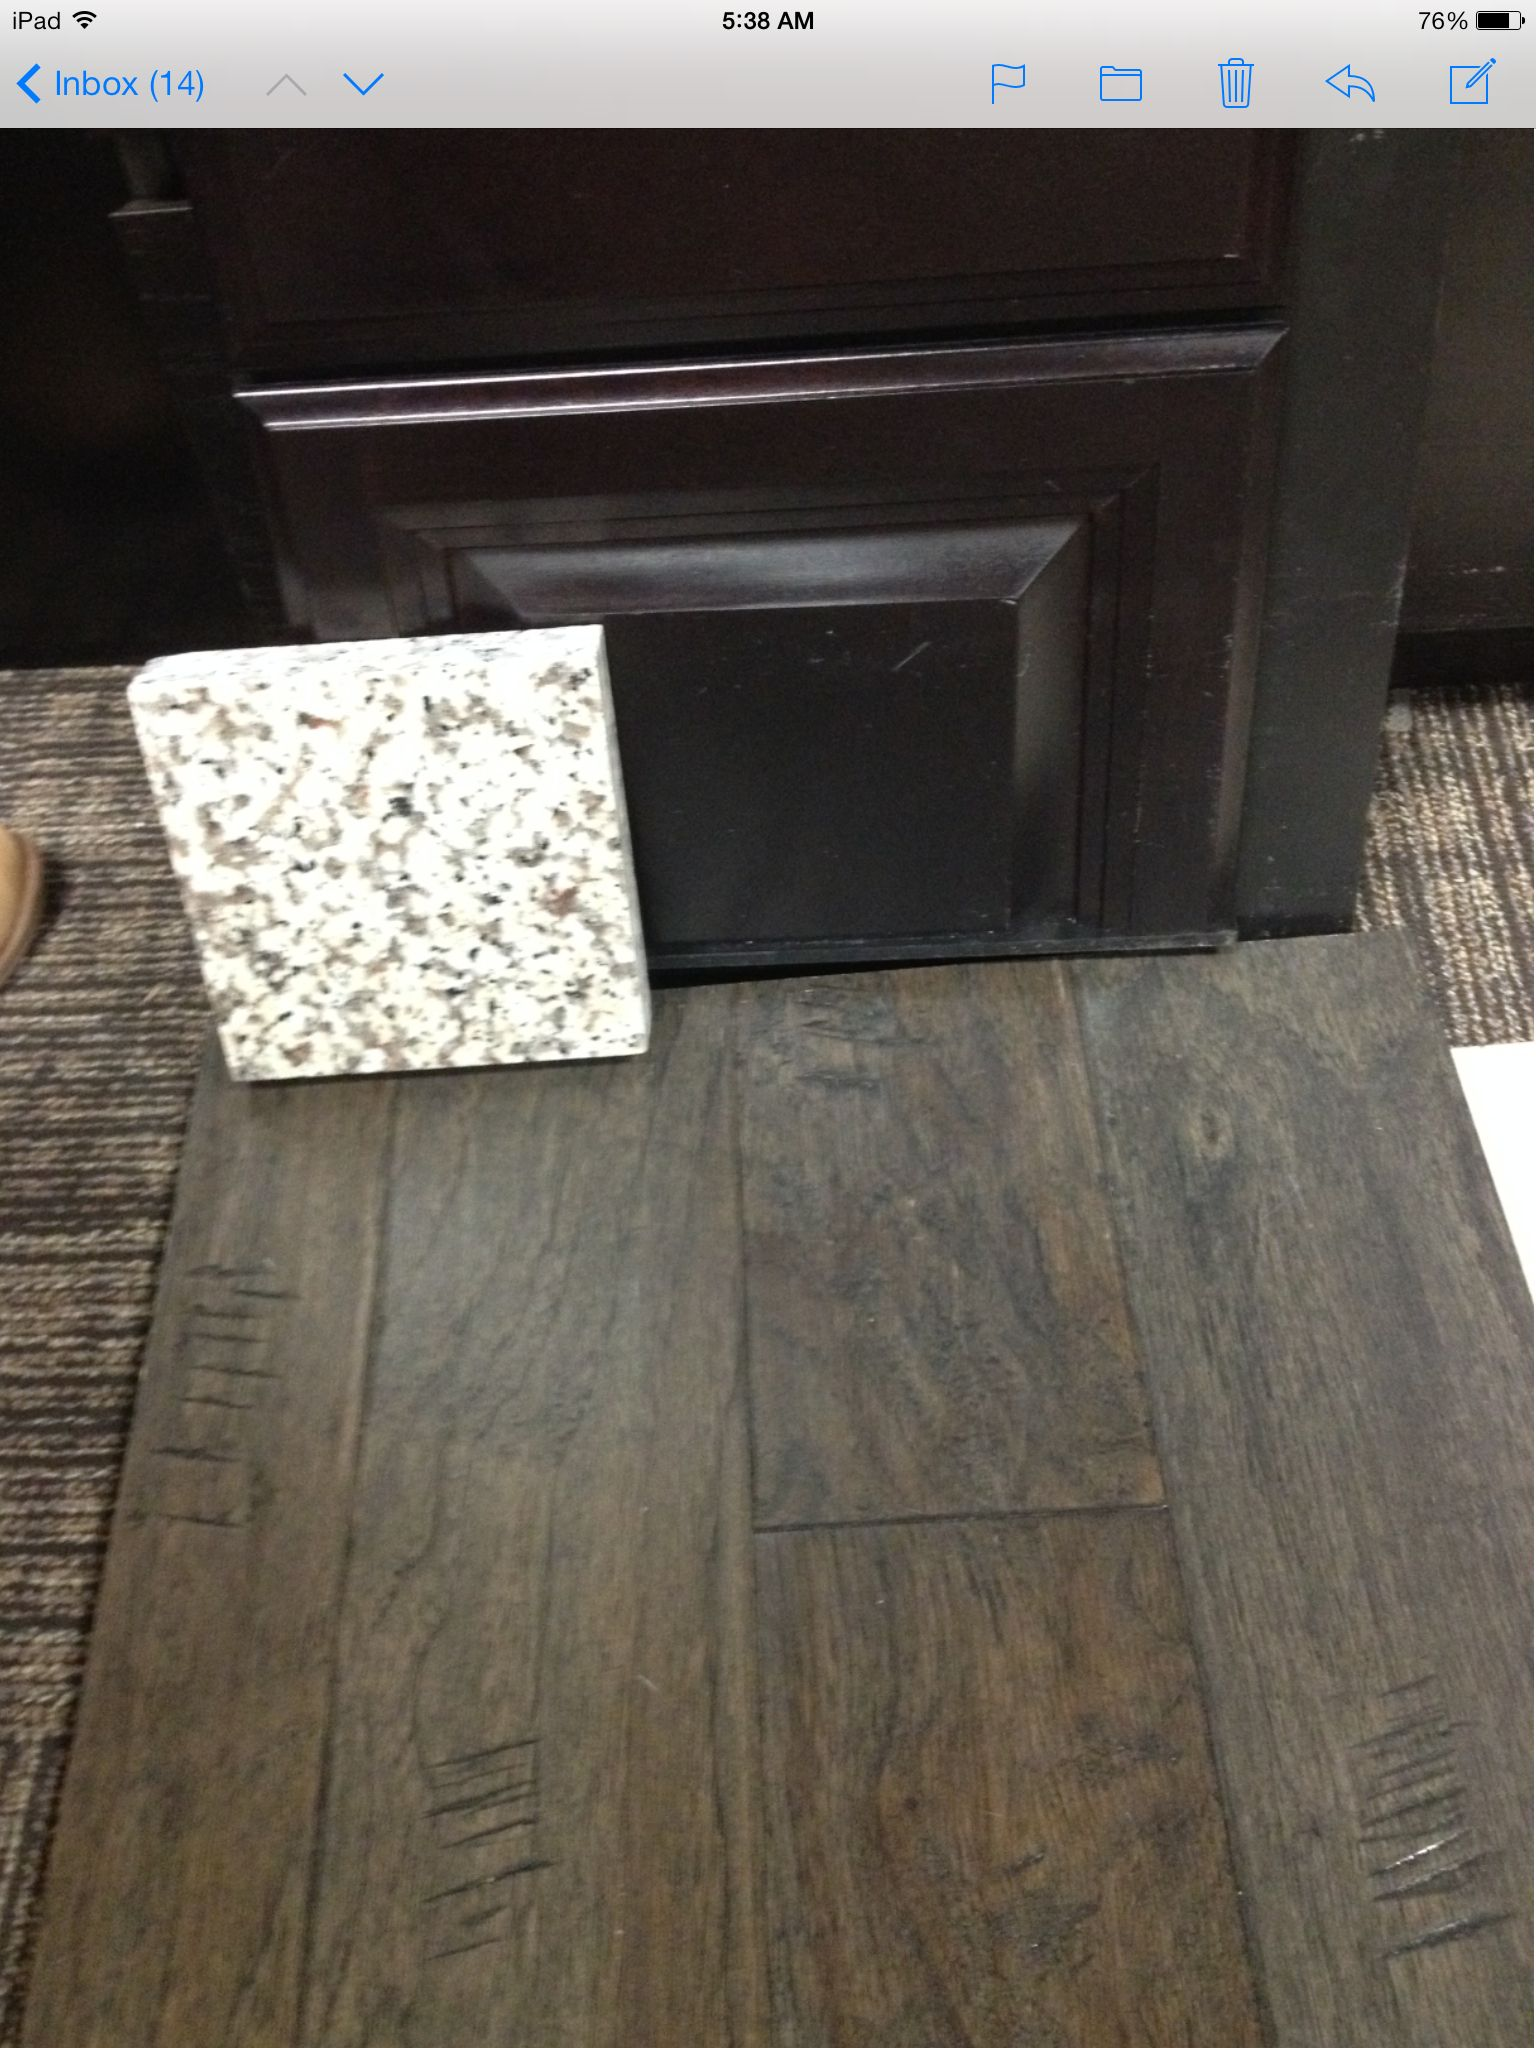 Armstrong bathroom cabinets - Maple Espresso Cabinets Armstrong 5 Engineered Wood Floor In Misty Gray Crema Carmel